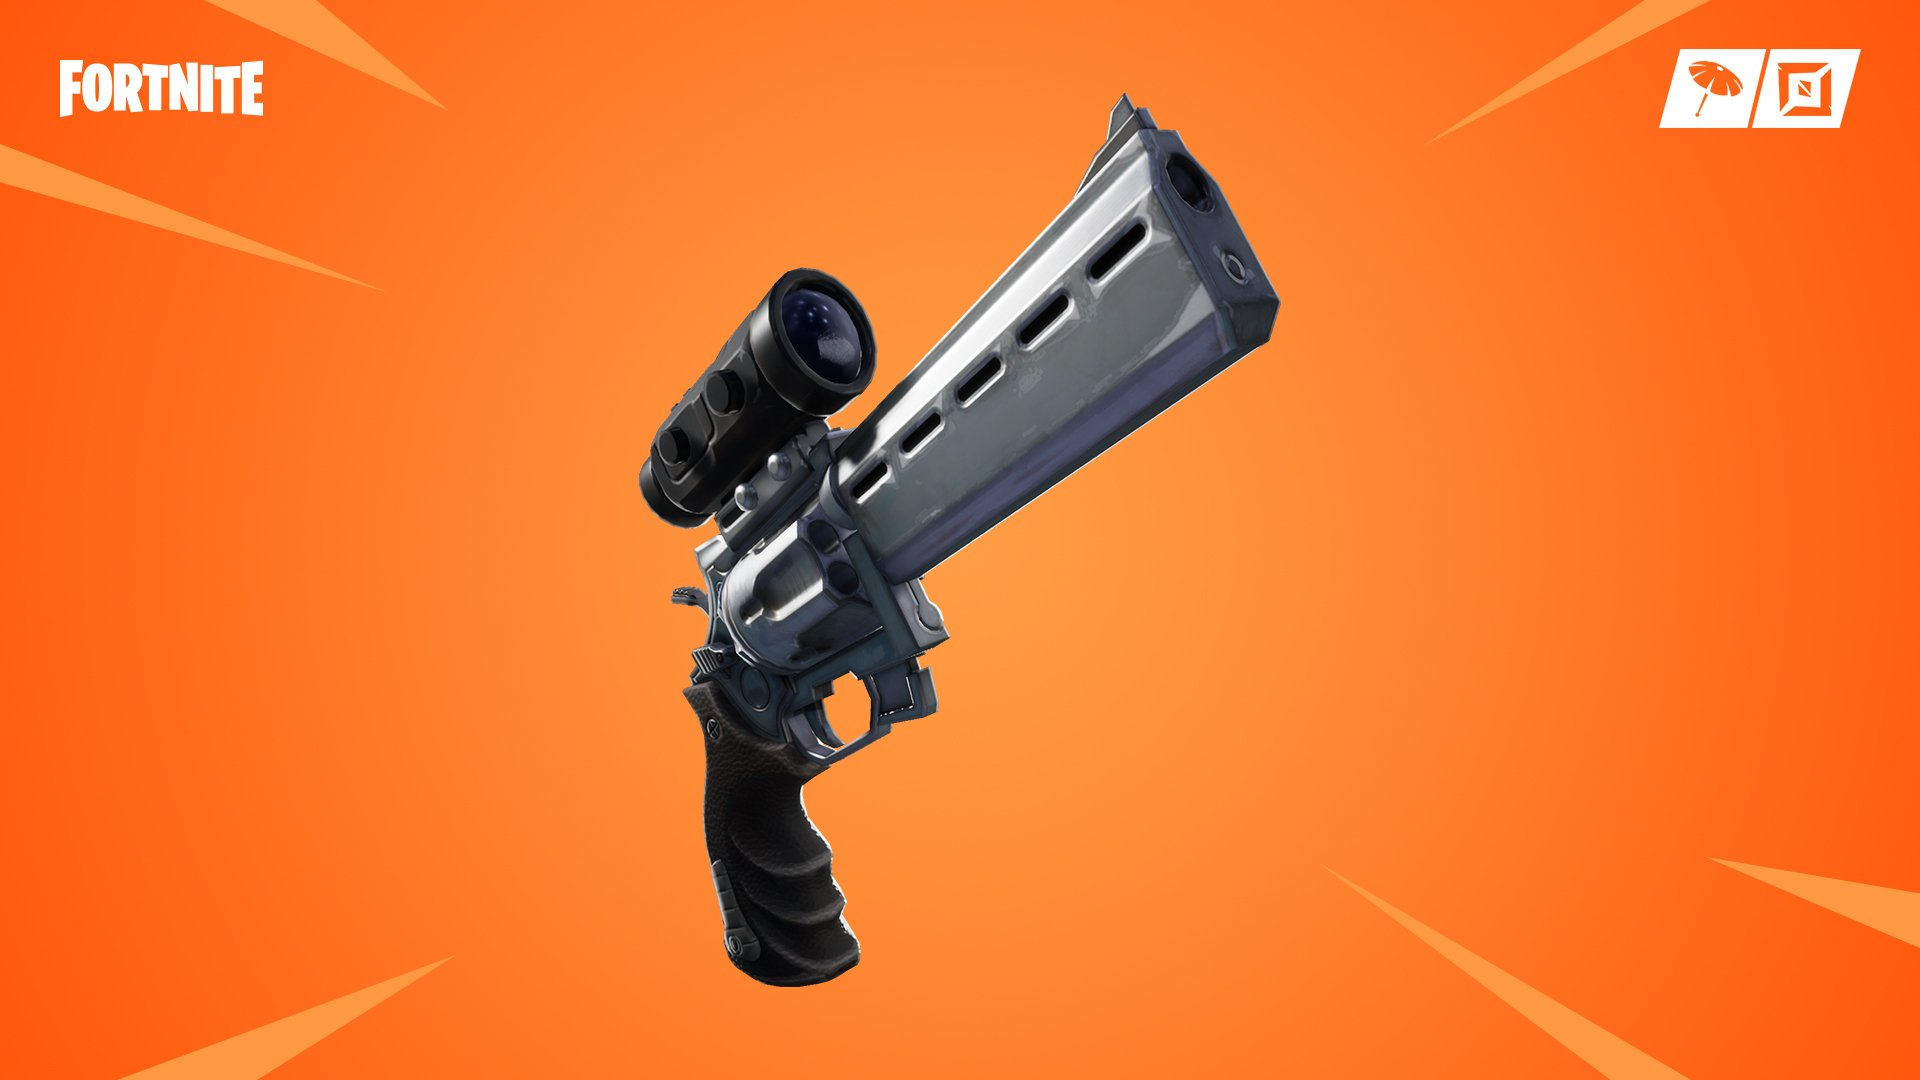 Update v7.20 adds a brand new weapon to Fortnite, the Scoped Revolver.